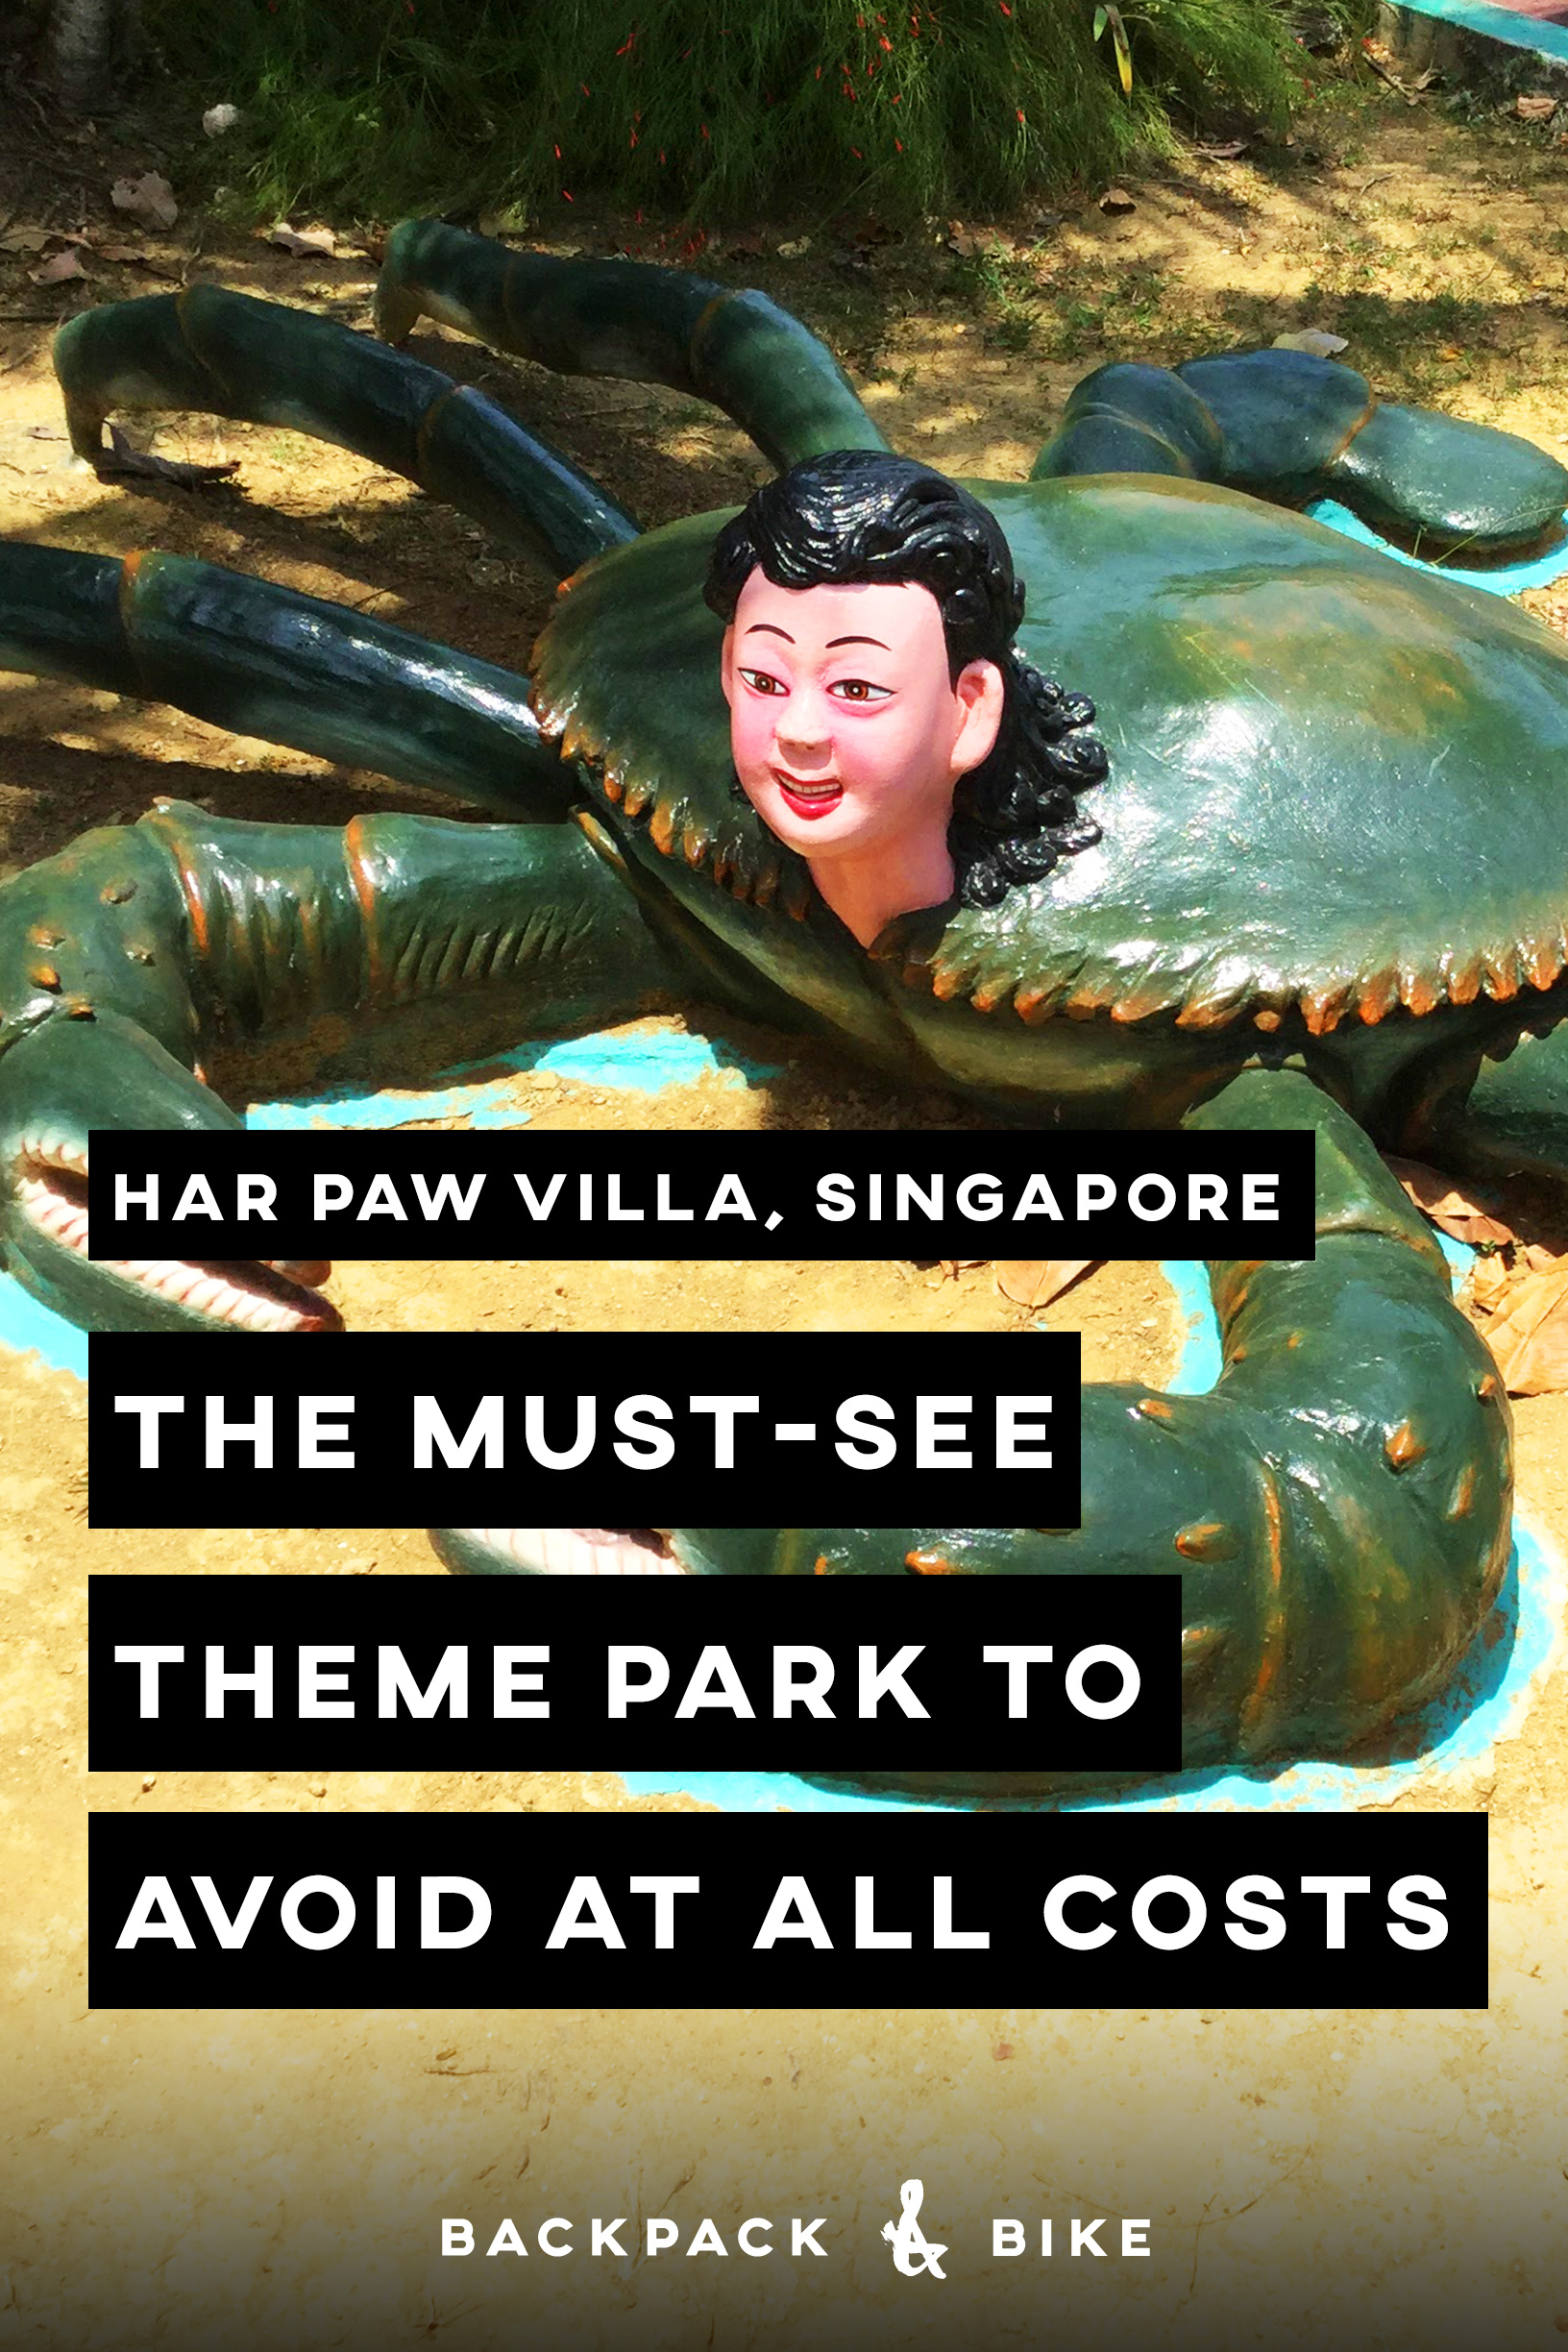 Today's trip to Har Paw Villa in Singapore made no sense. This bizarre post-apocalyptic abandoned theme park had a very strange flavour about it. Perhaps these images will help you understand.